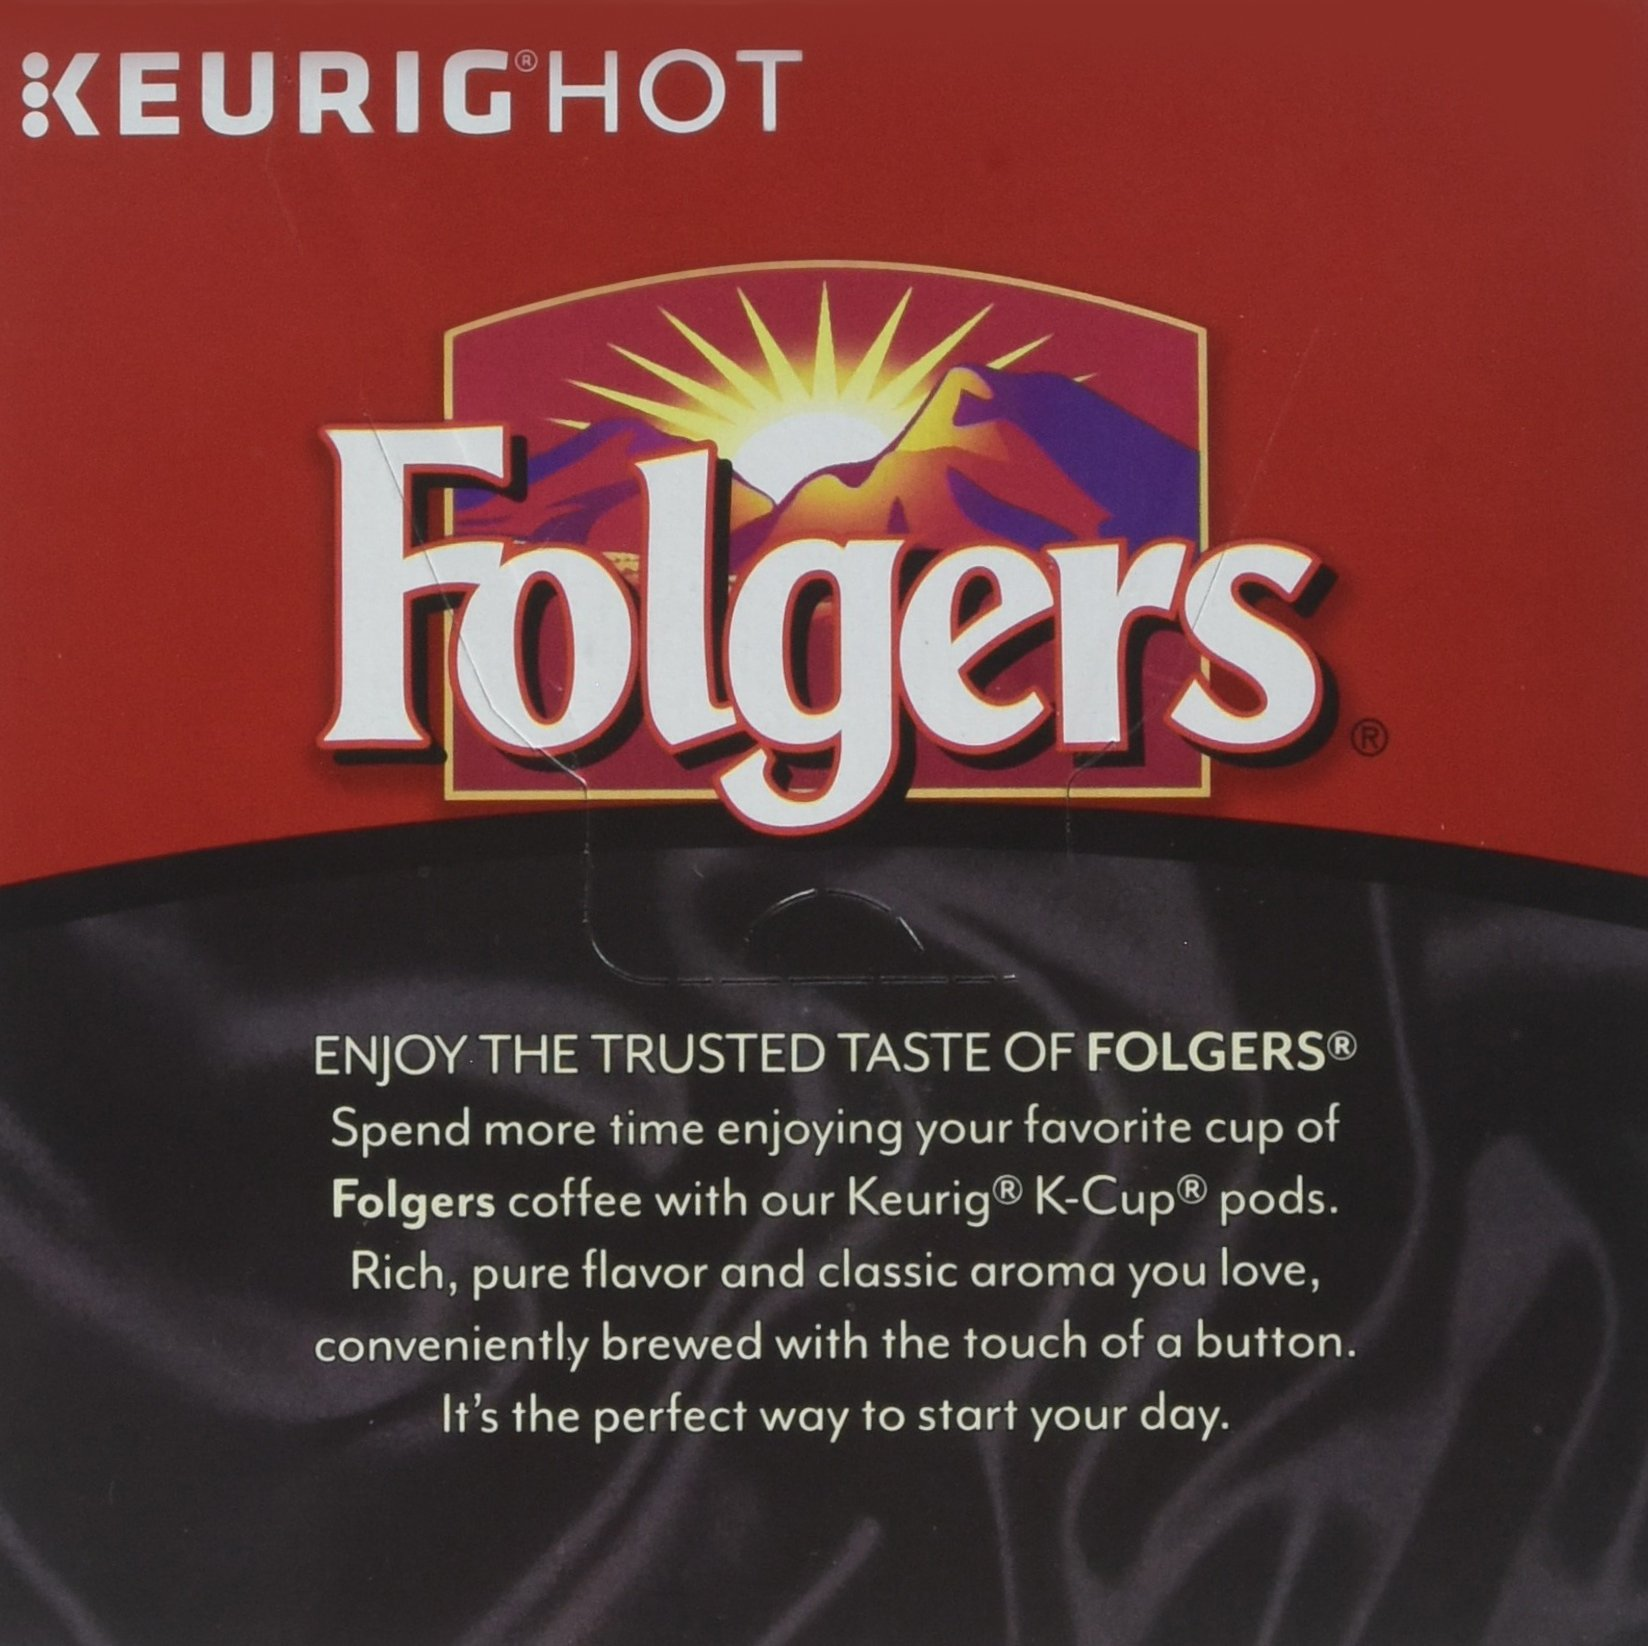 Folgers Black Silk Coffee, Dark Roast, K-Cup Pods for Keurig K-Cup Brewers, 18-Count (Pack of 4) by FOLGERS K CUPS (Image #4)